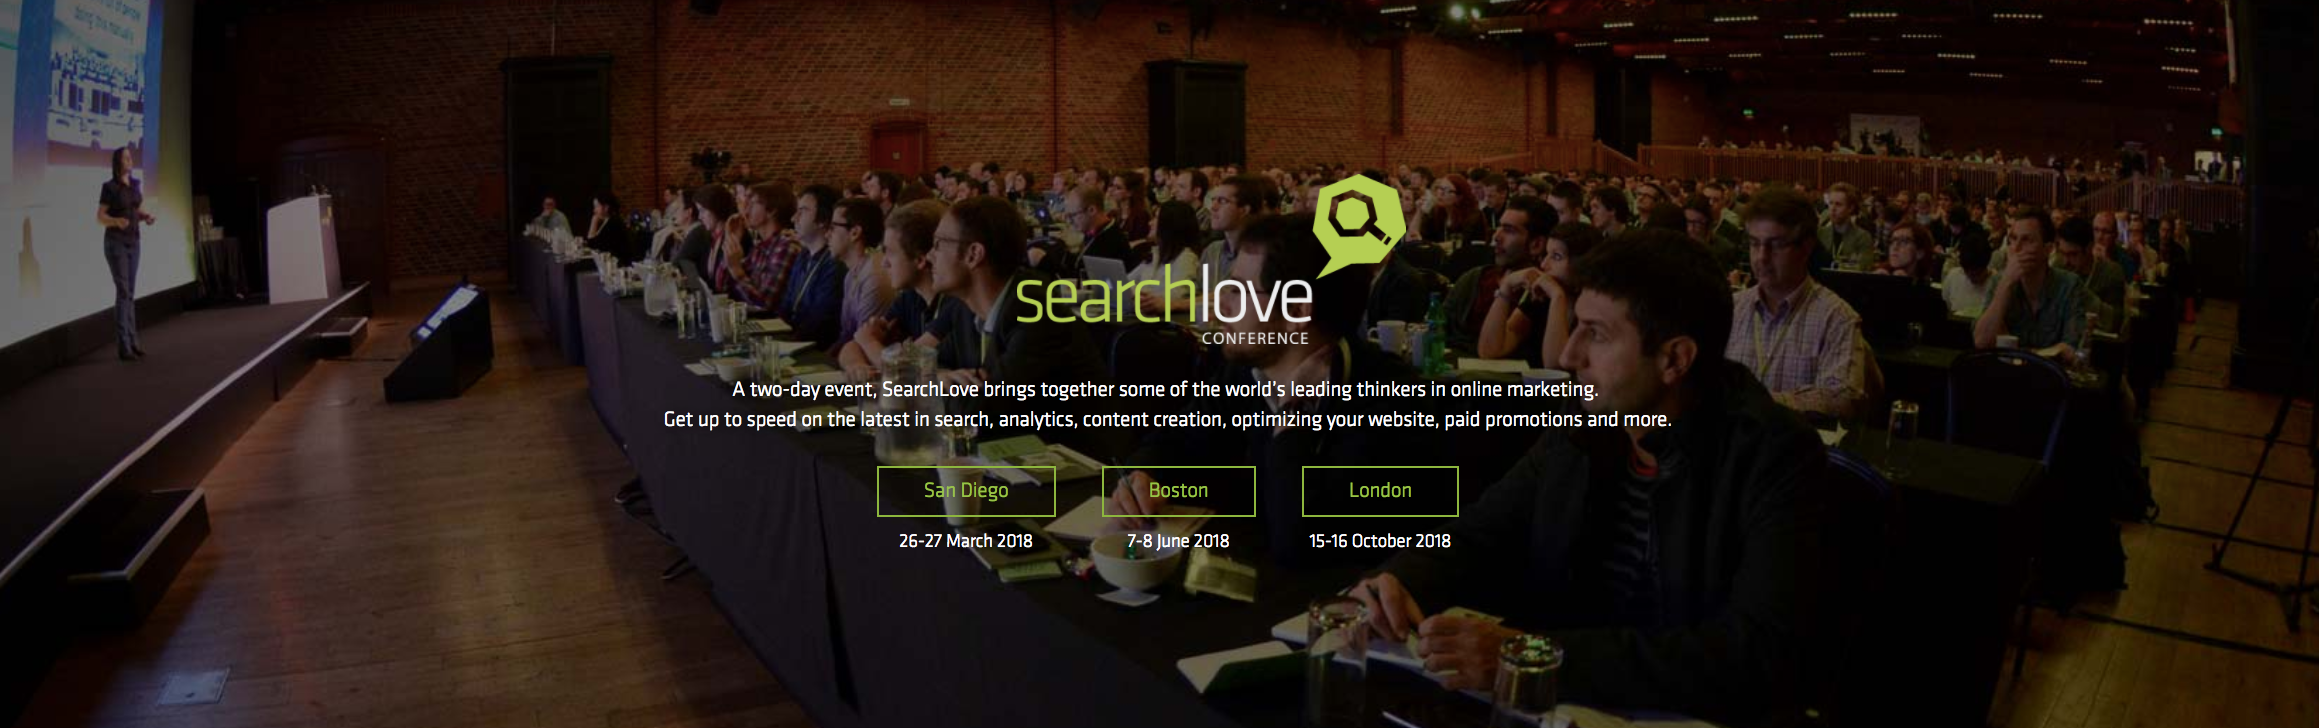 Search Love 2018 Marketing Conferences